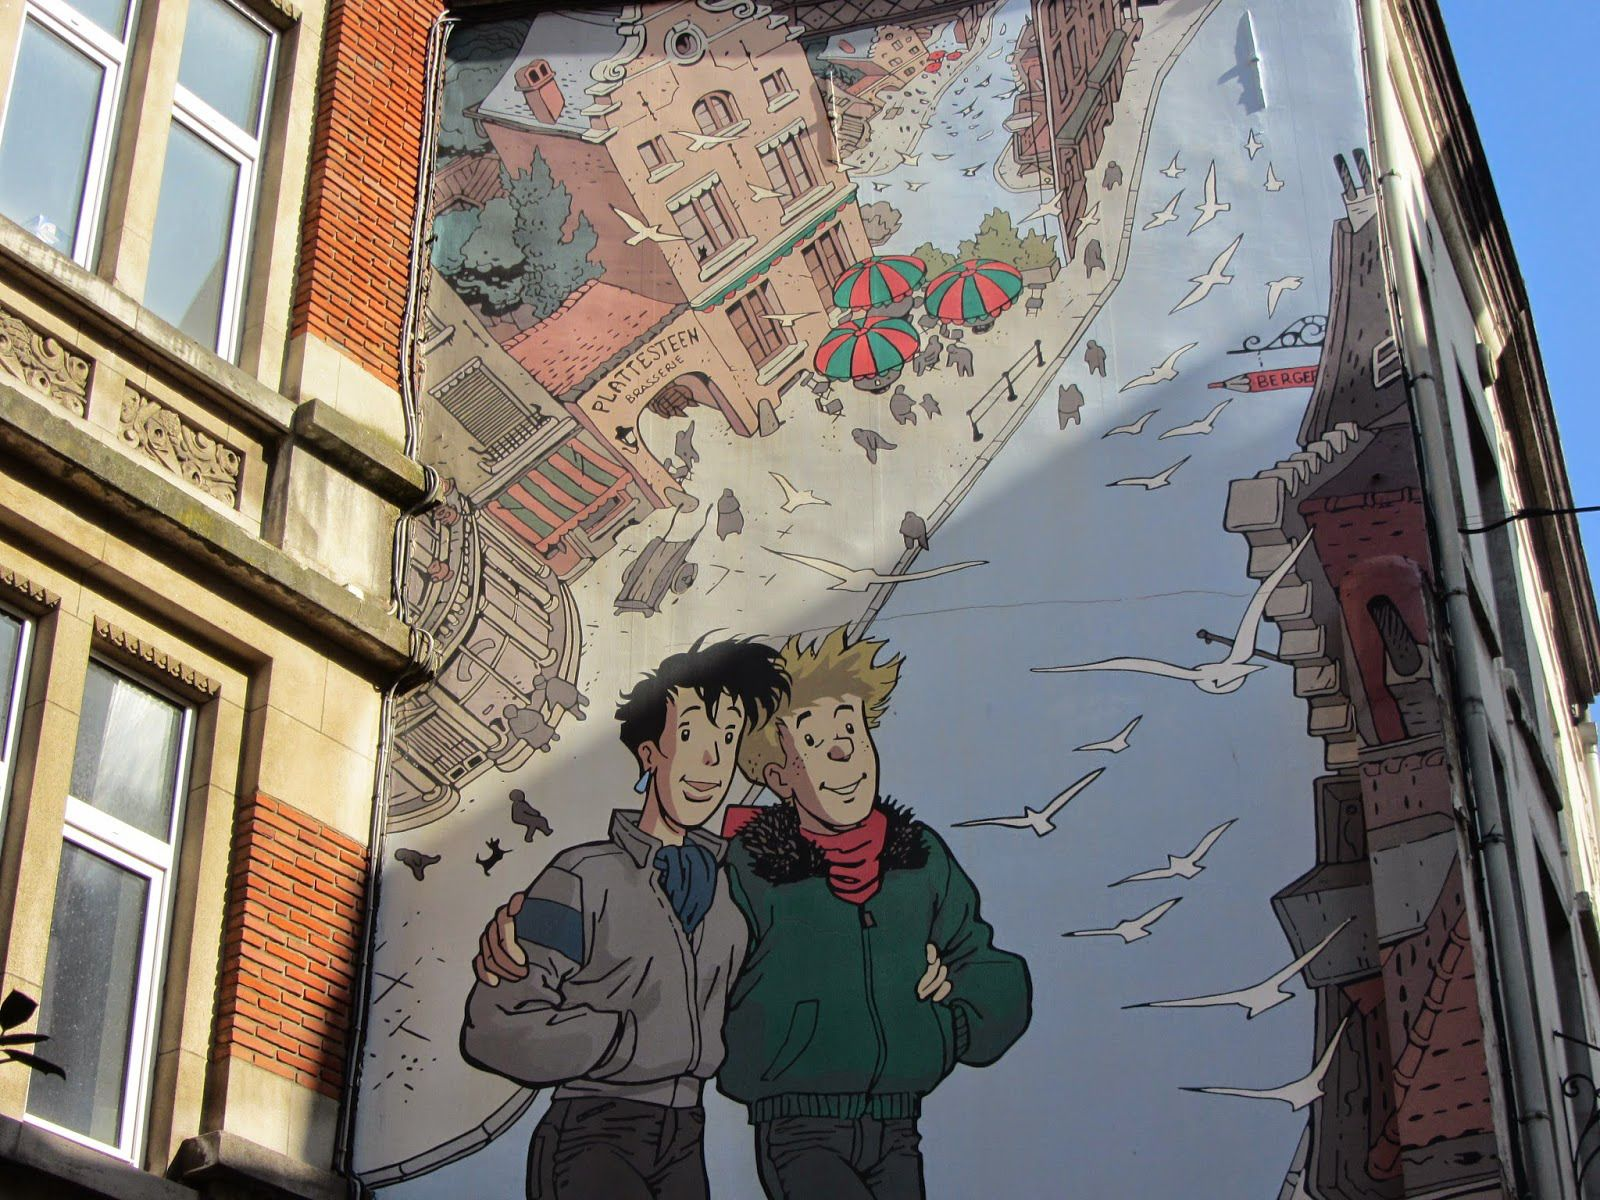 Brussels' comic book wall 20